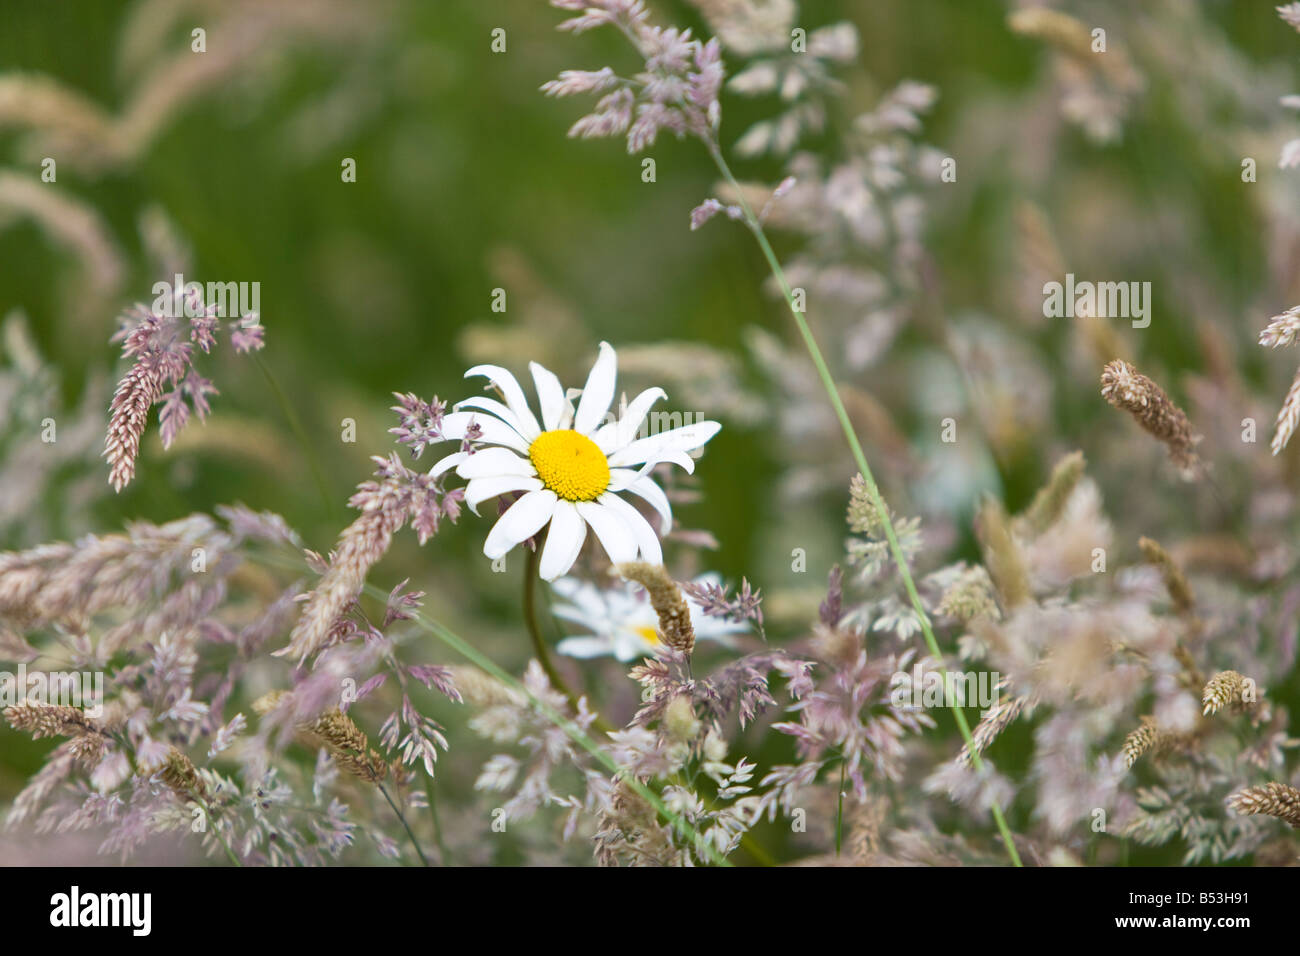 wild lawn with long grass and dog daisy - Stock Image